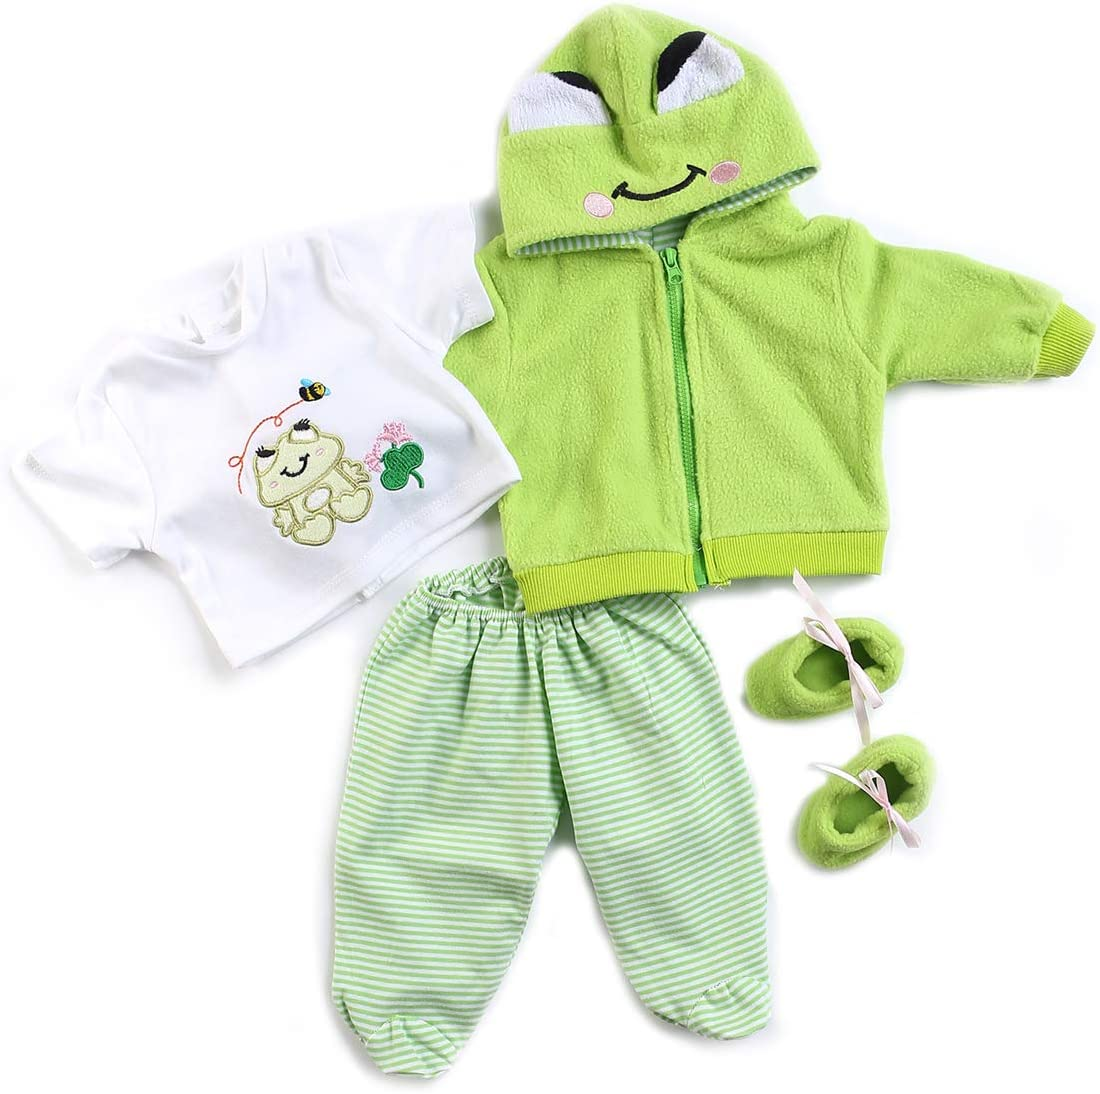 Medylove Reborn Baby Dolls Super beauty product restock quality top! Clothes Green for 20-23inch Suit Rebo Regular discount